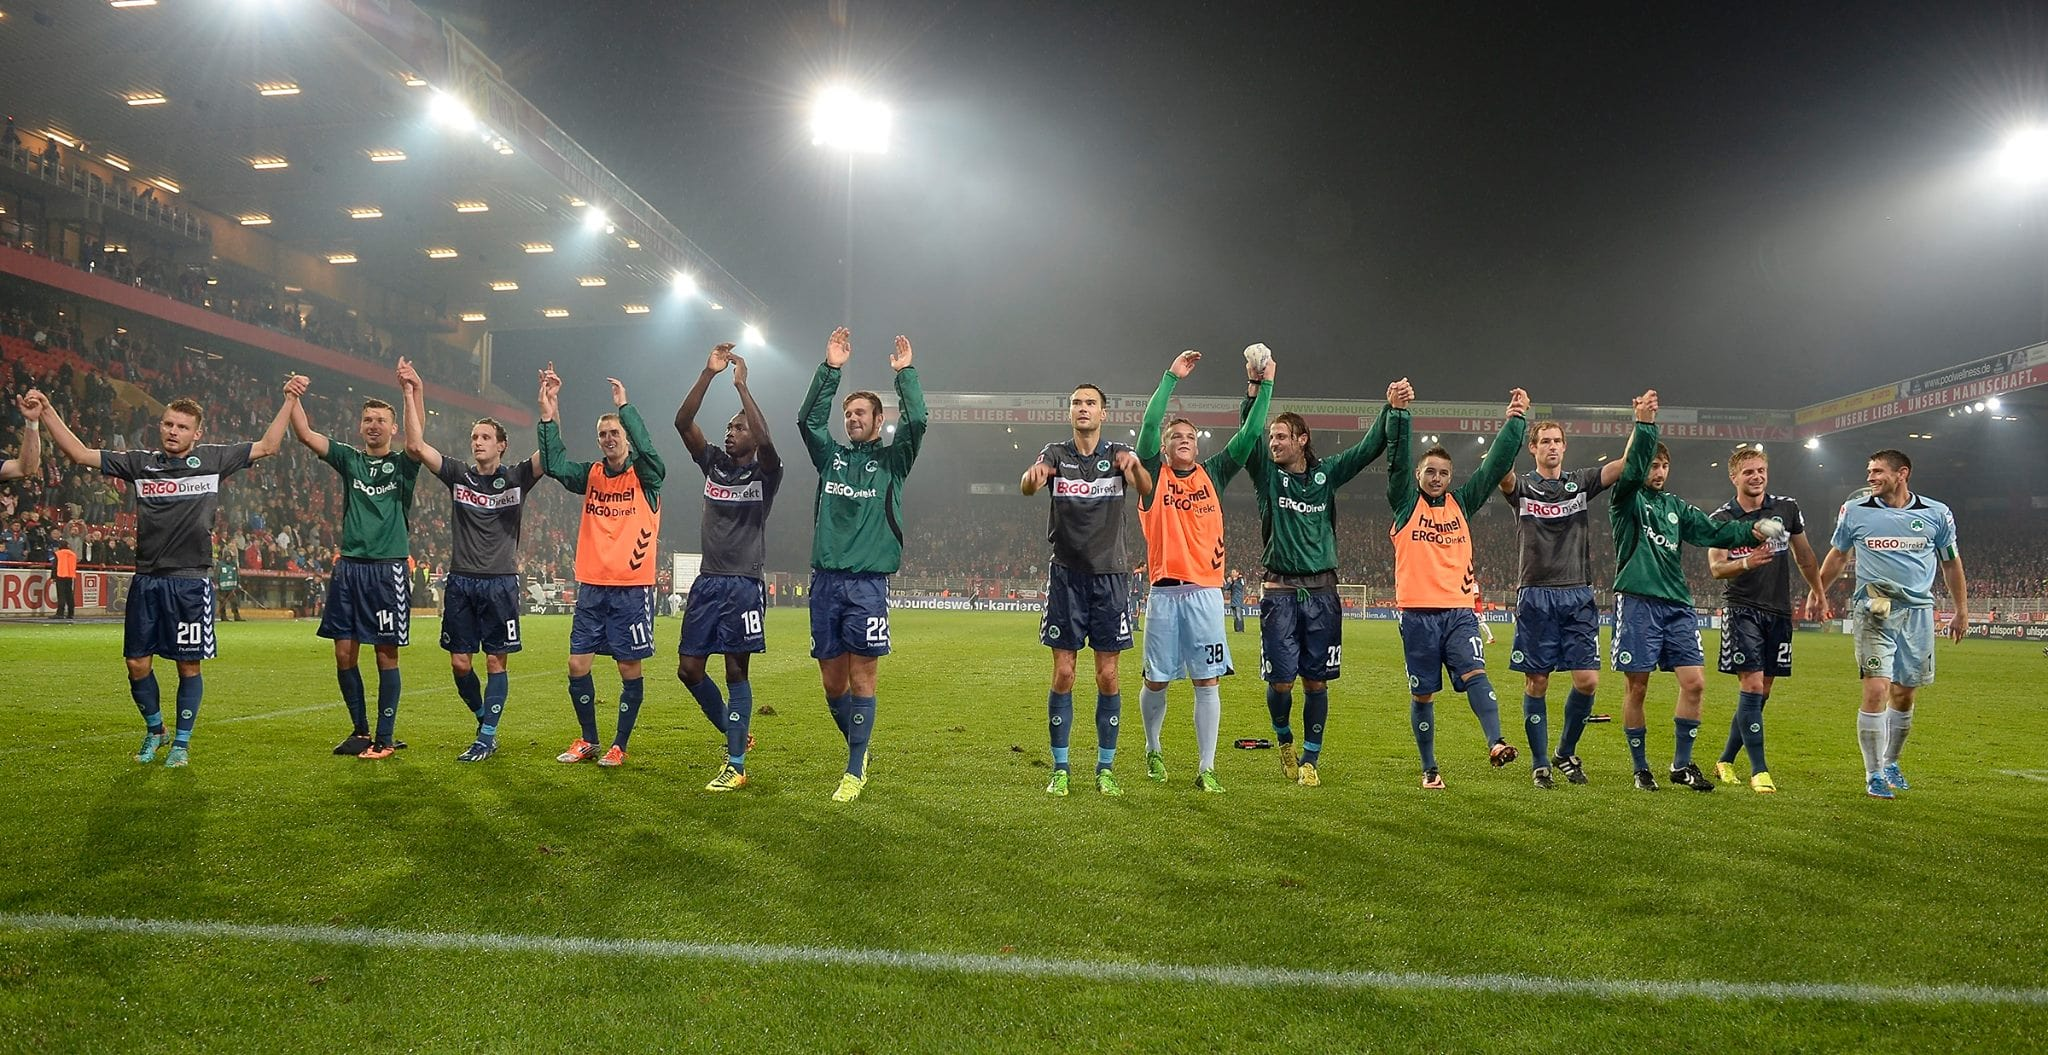 soi-keo-darmstadt-vs-greuther-furth-vao-23h30-ngay-29-5-2020-2